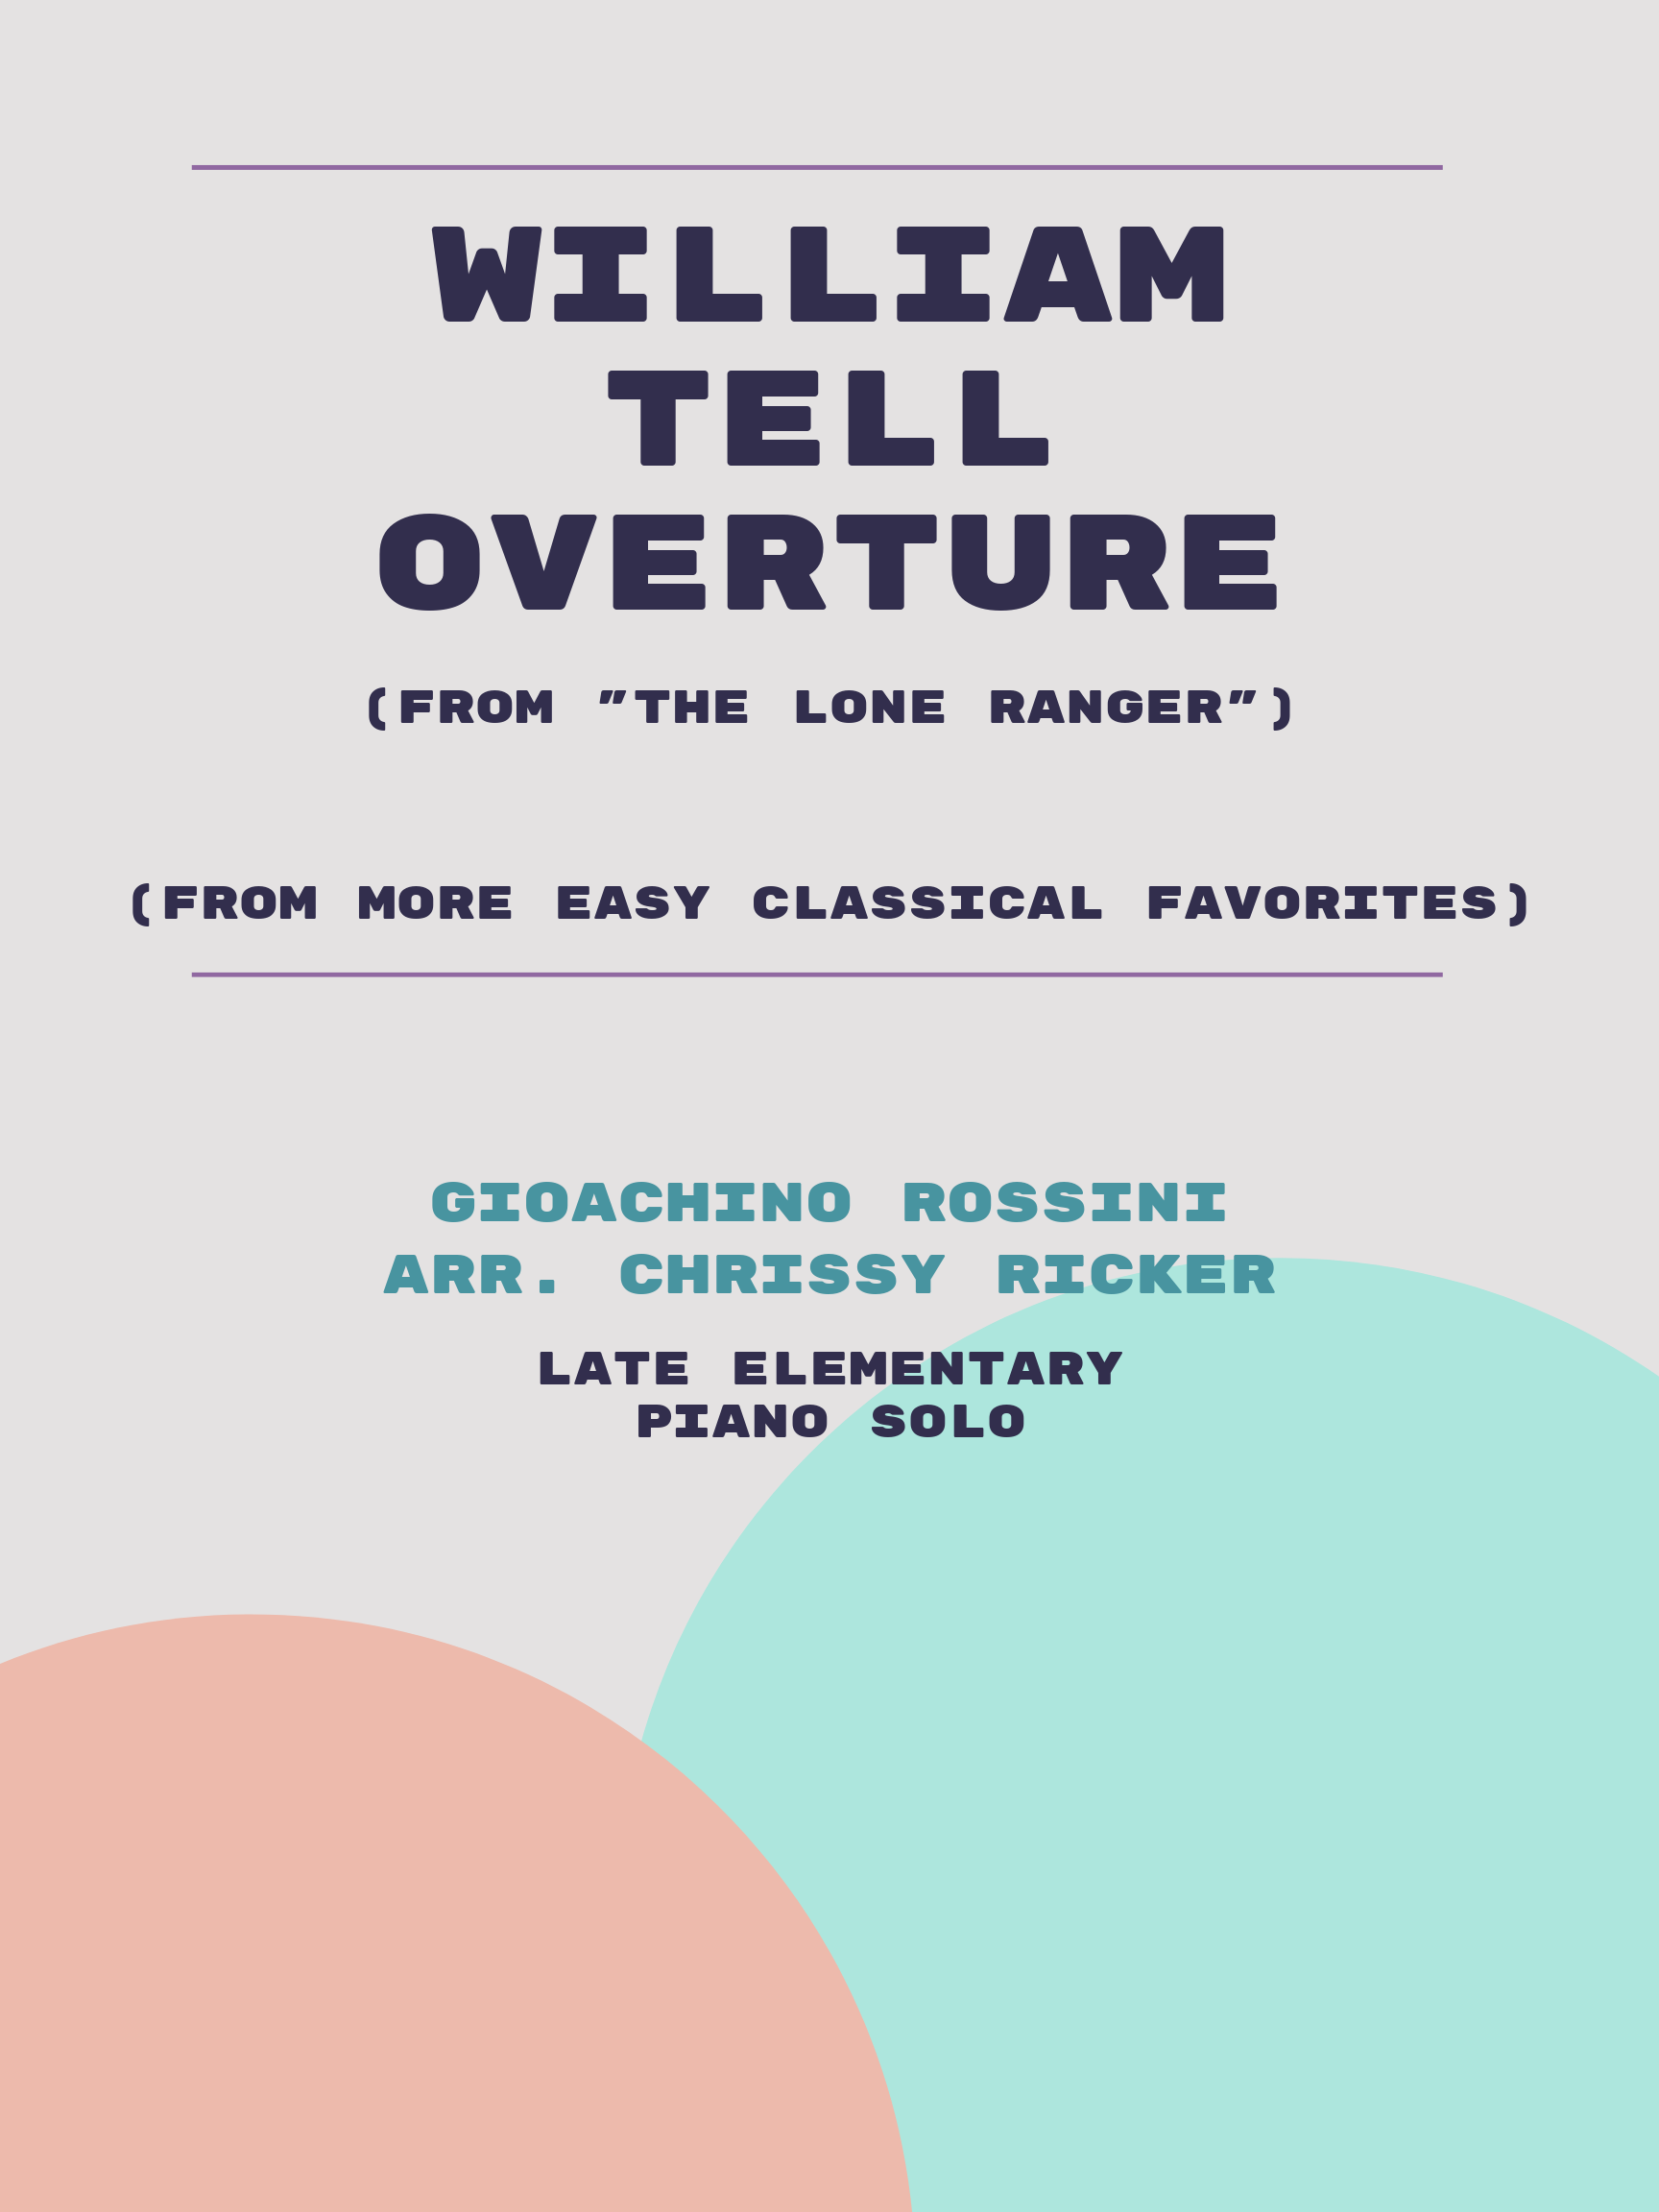 William Tell Overture by Gioachino Rossini